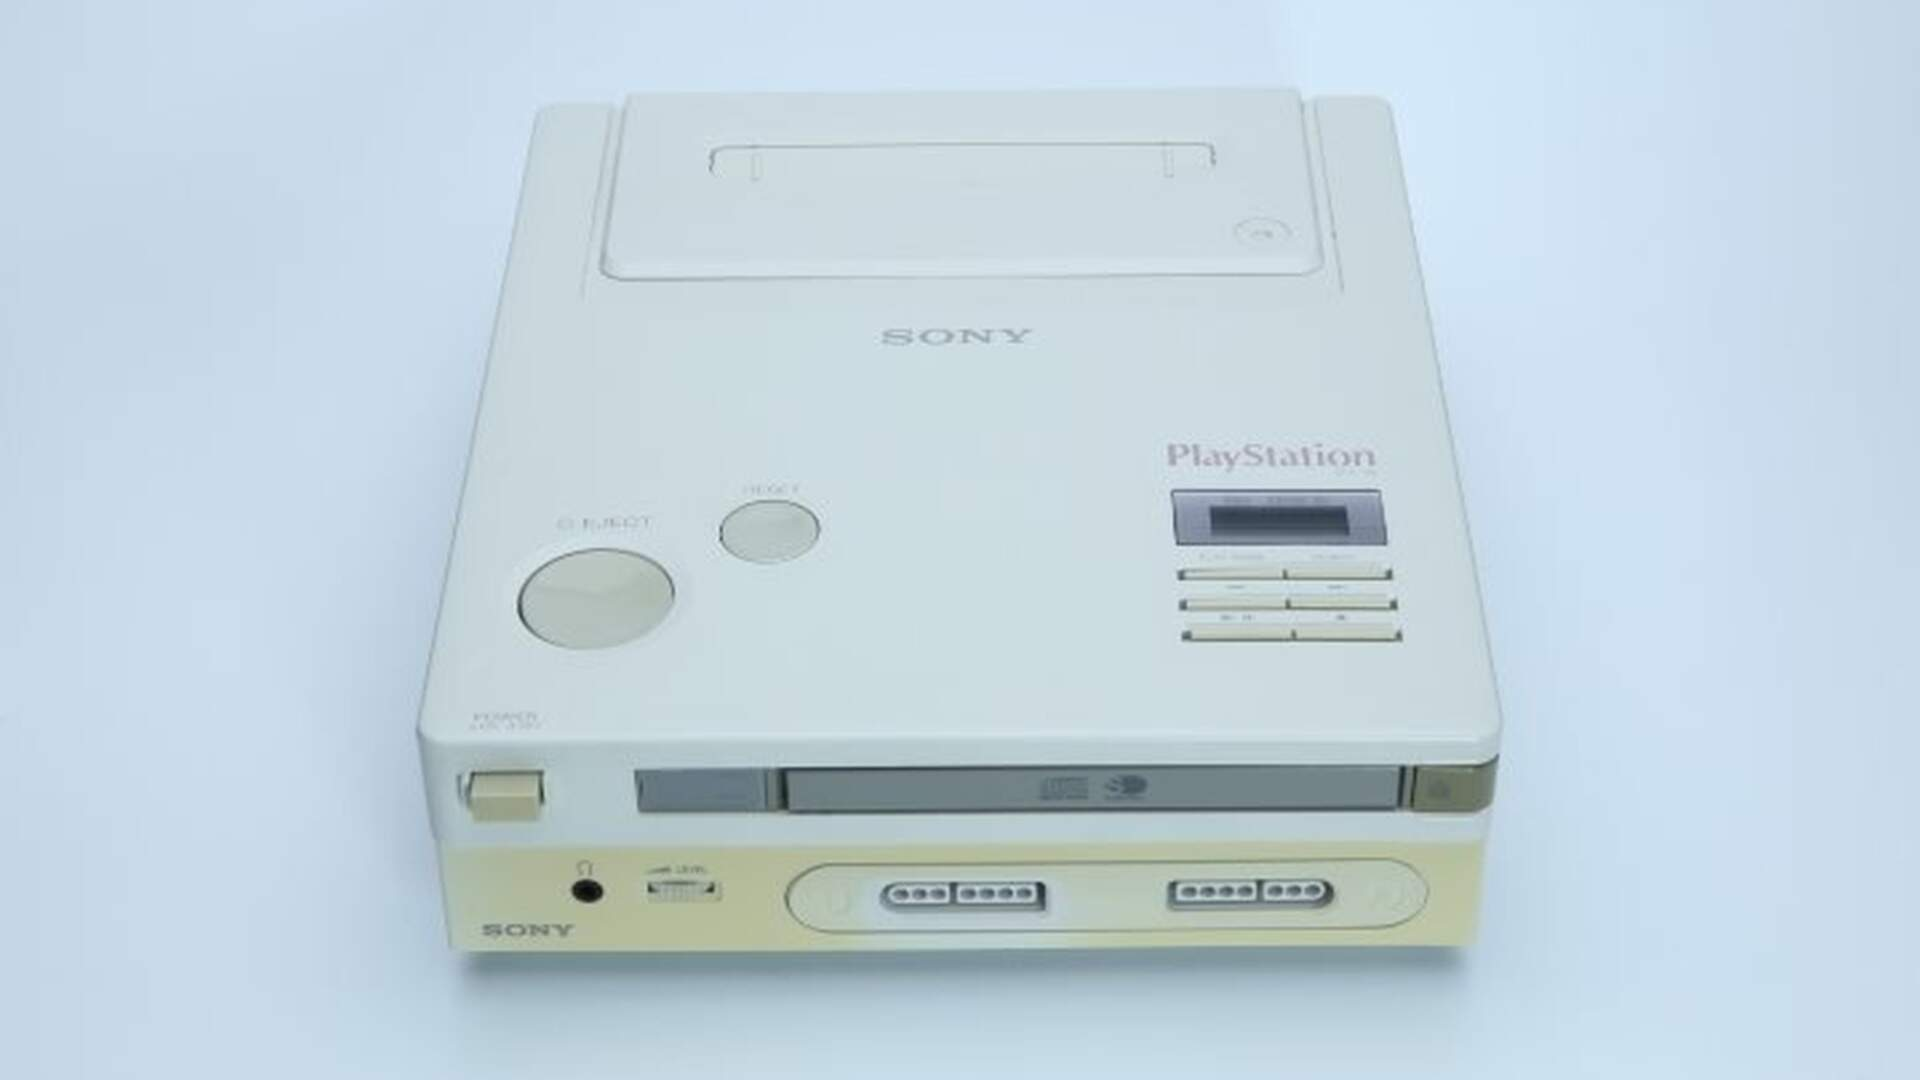 The Nintendo PlayStation Prototype Is Up for Auction, and Bidding's Already at $31,000